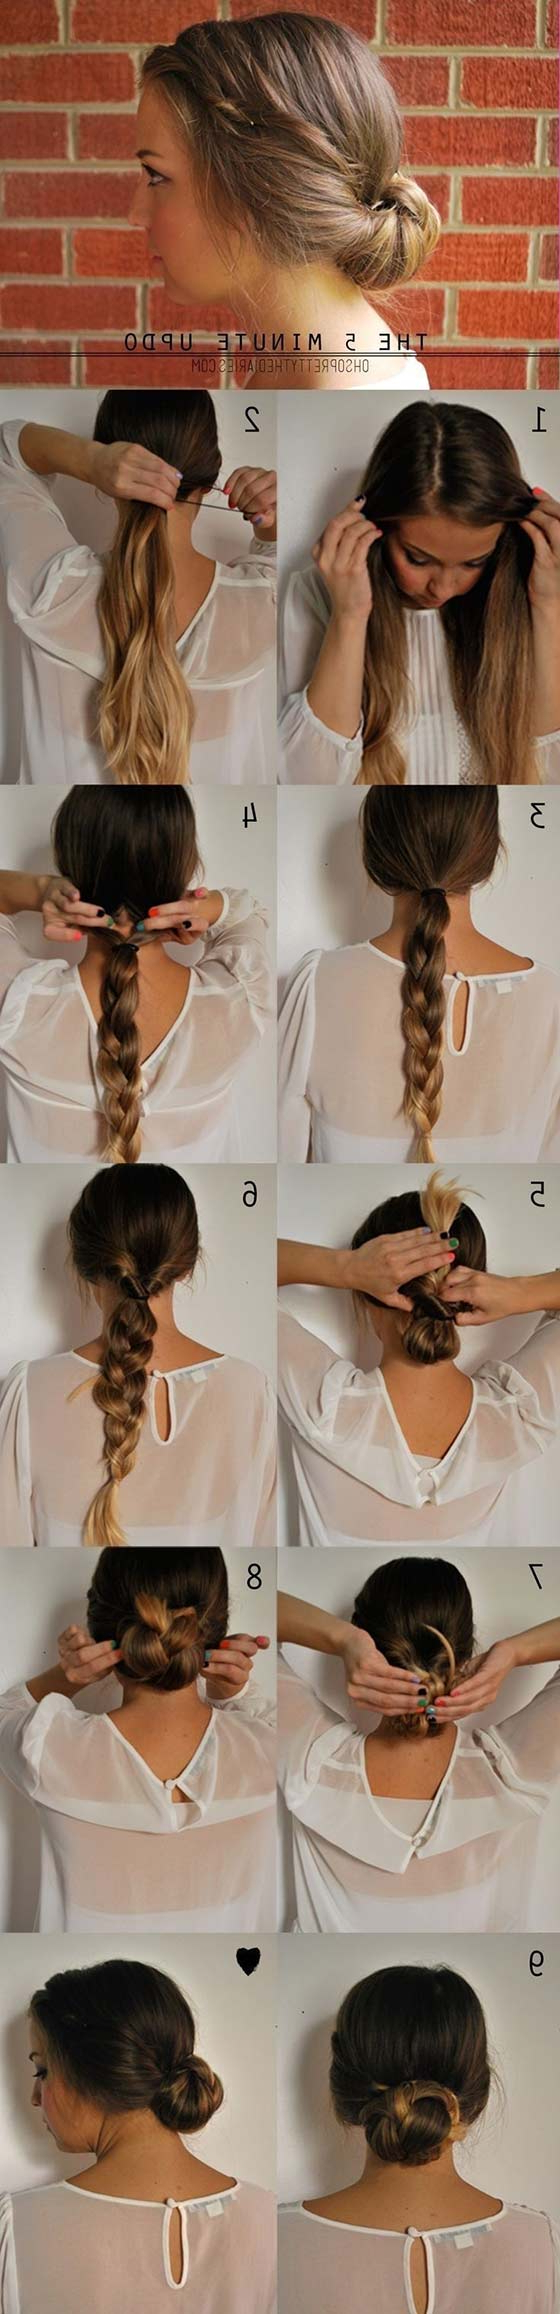 Recent Tie It Up Updo Hairstyles Within 40 Top Hairstyles For Women With Thick Hair (View 17 of 20)